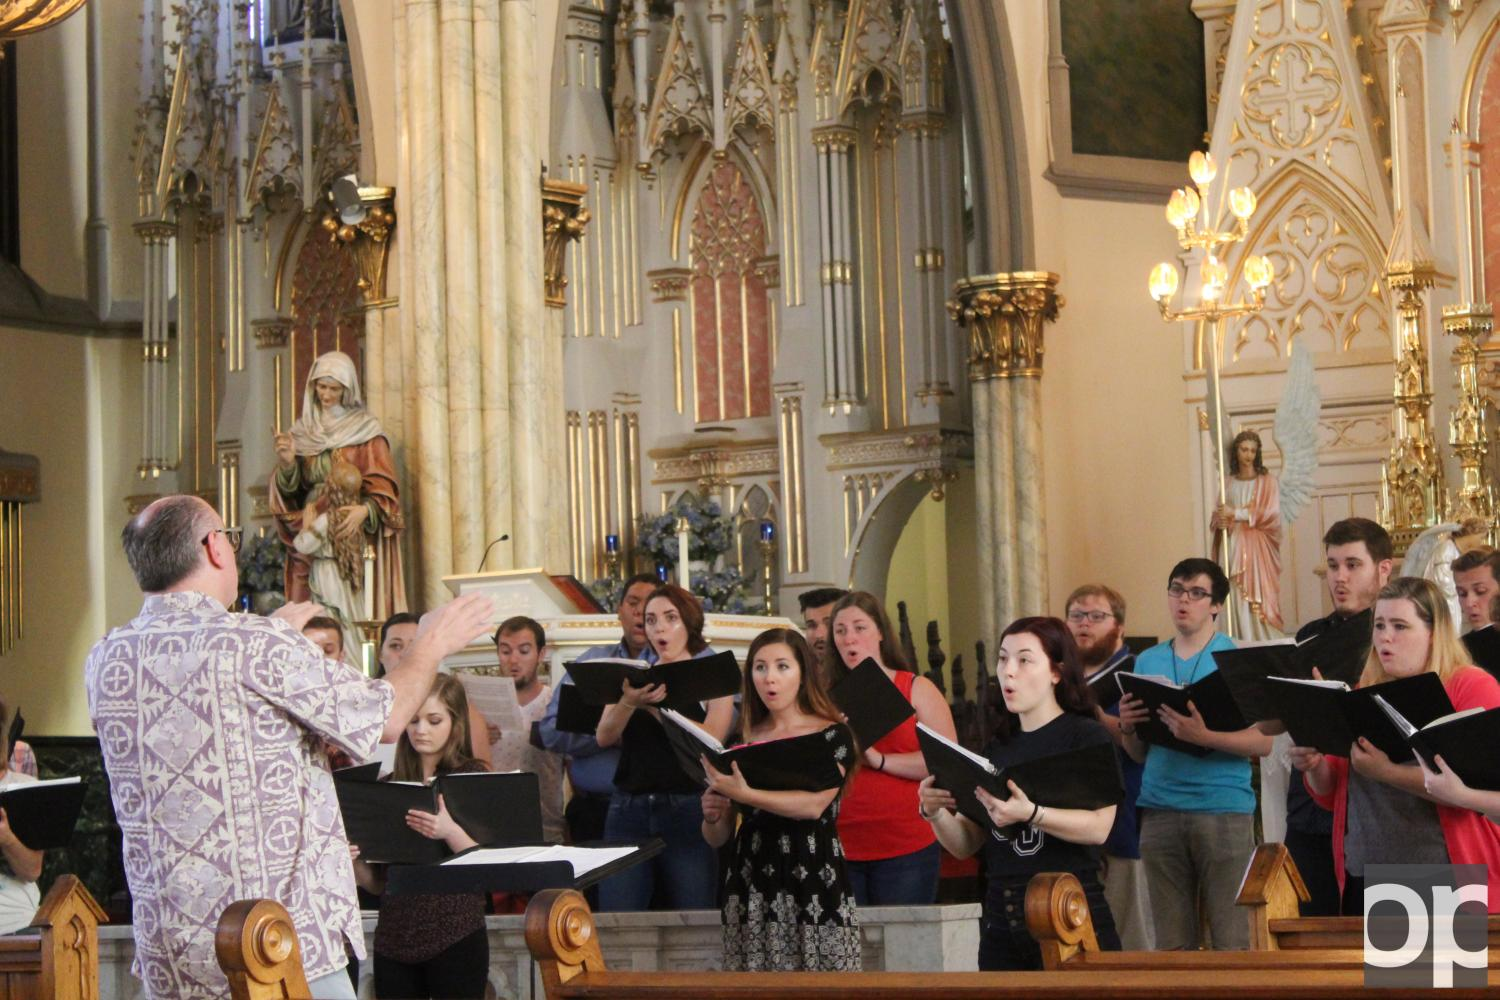 Oakland+University+Choral+sings+inside+Sweetest+Heart+of+Mary+Roman+Catholic+Church+before+heading+off+to+Europe.